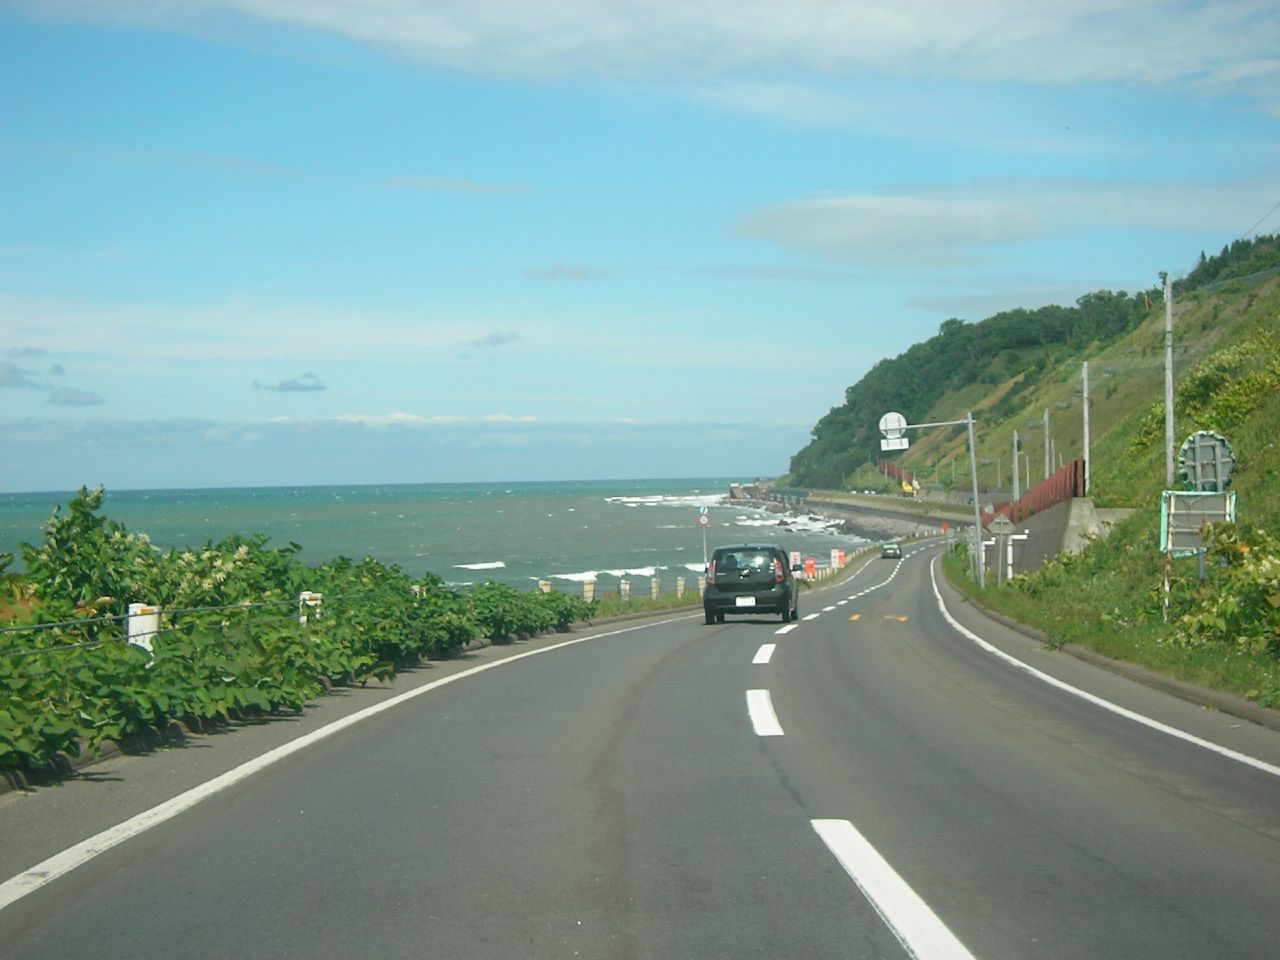 Drive to Shiretoko Peninsula 知床半島へドライブ